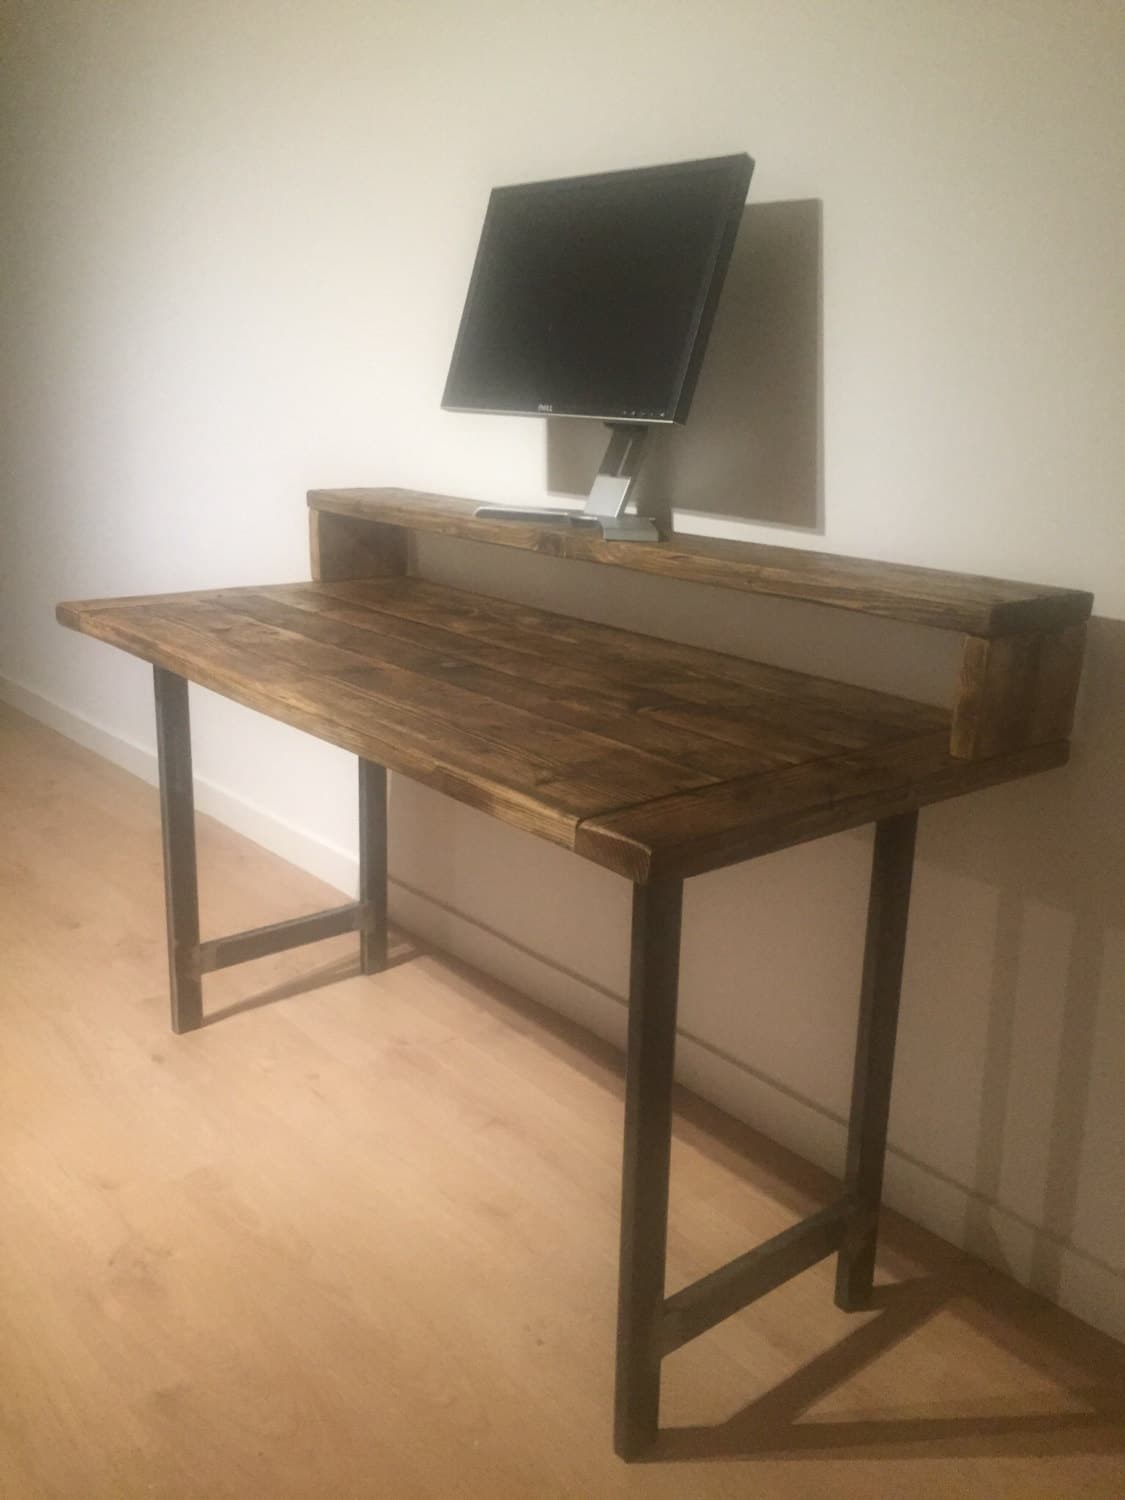 Reclaimed Solid Pine Desk Monitor Stand With Graded Steel Legs